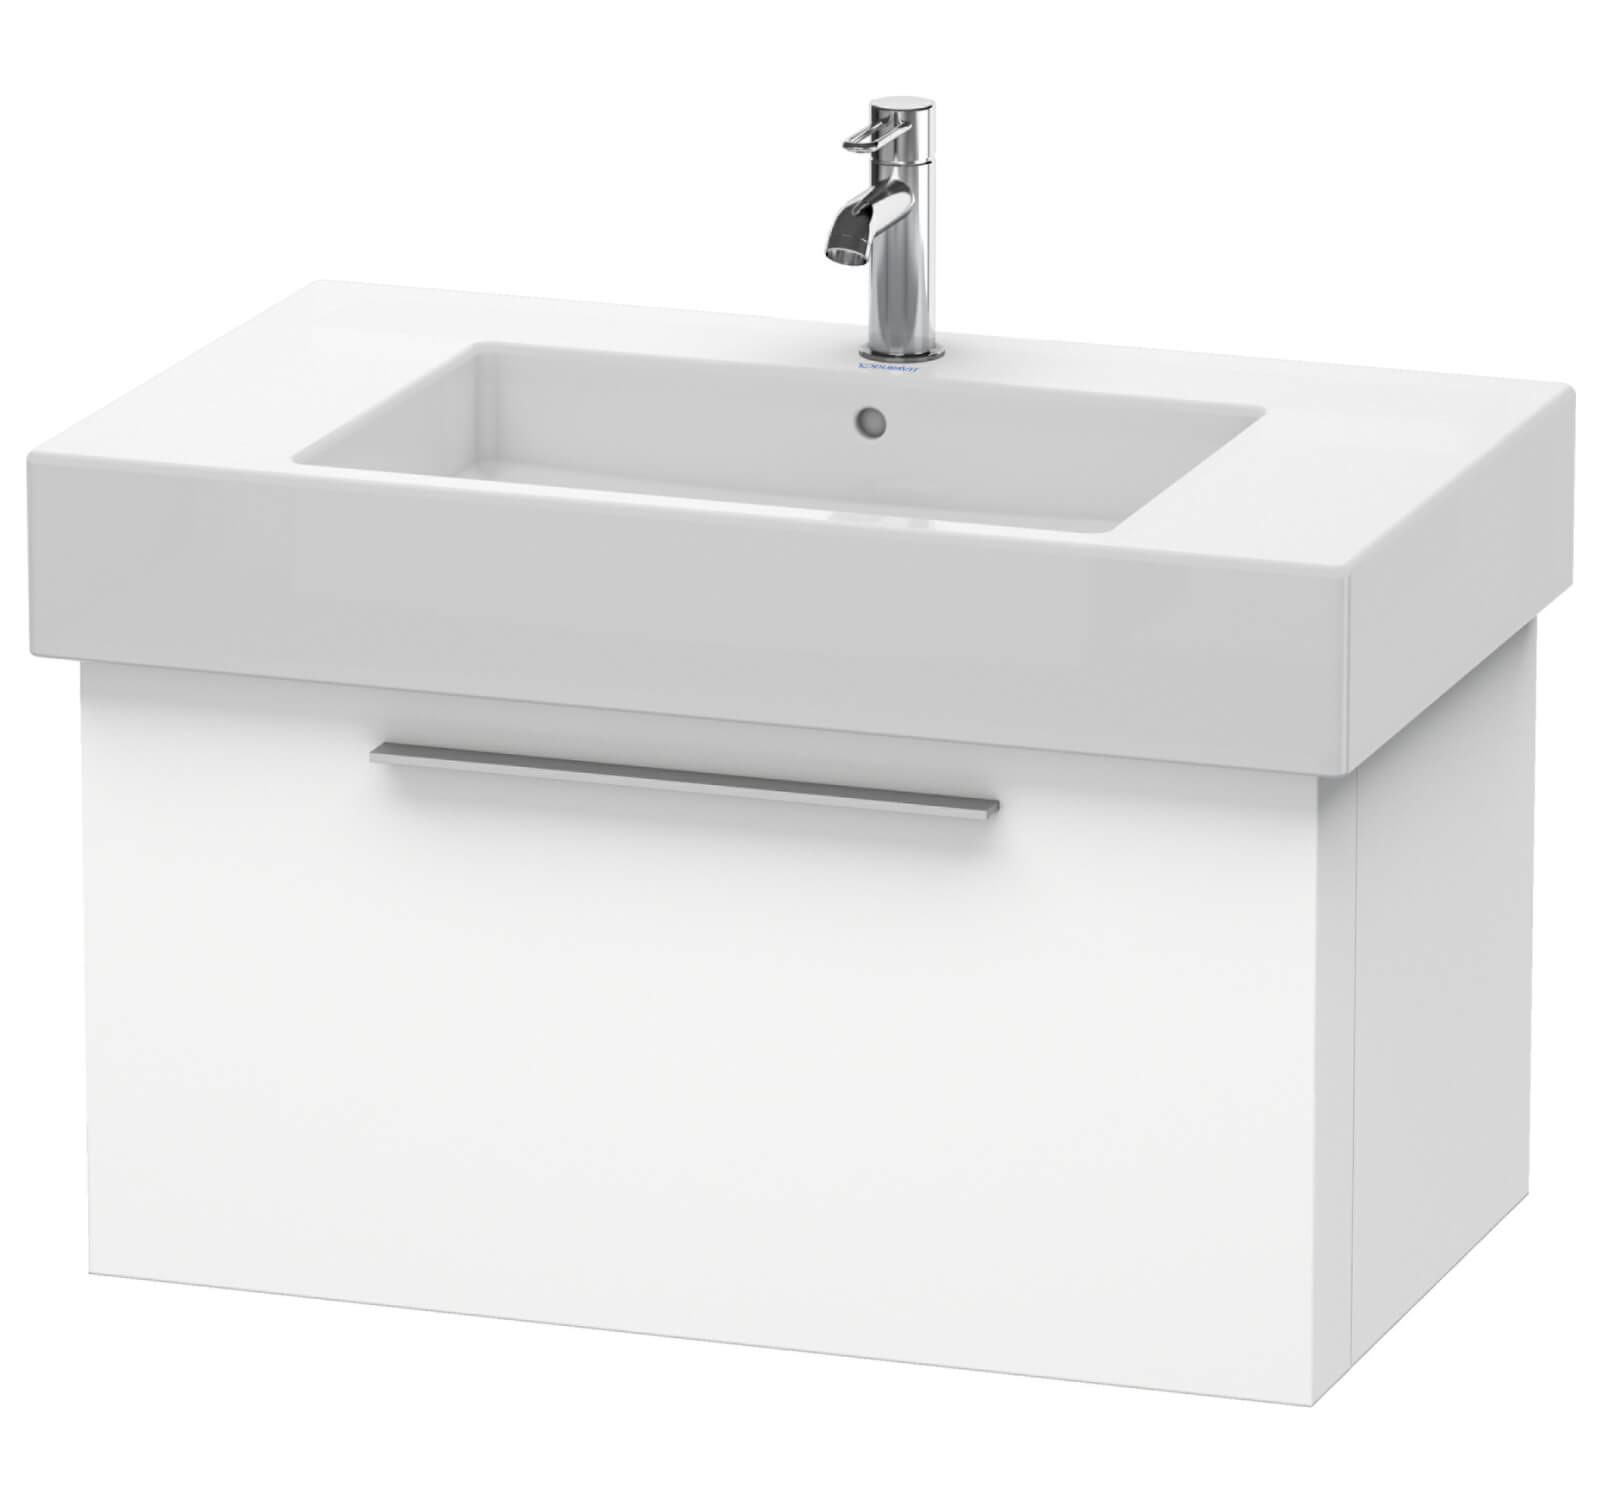 Duravit Fogo 800 X 850mm Wall Mounted Vanity Unit For Vero